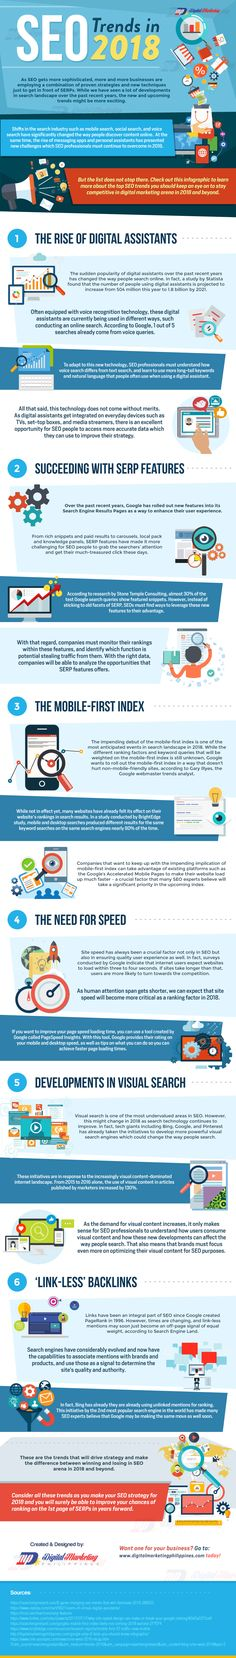 SEO Trends in 2018 - #Infographic